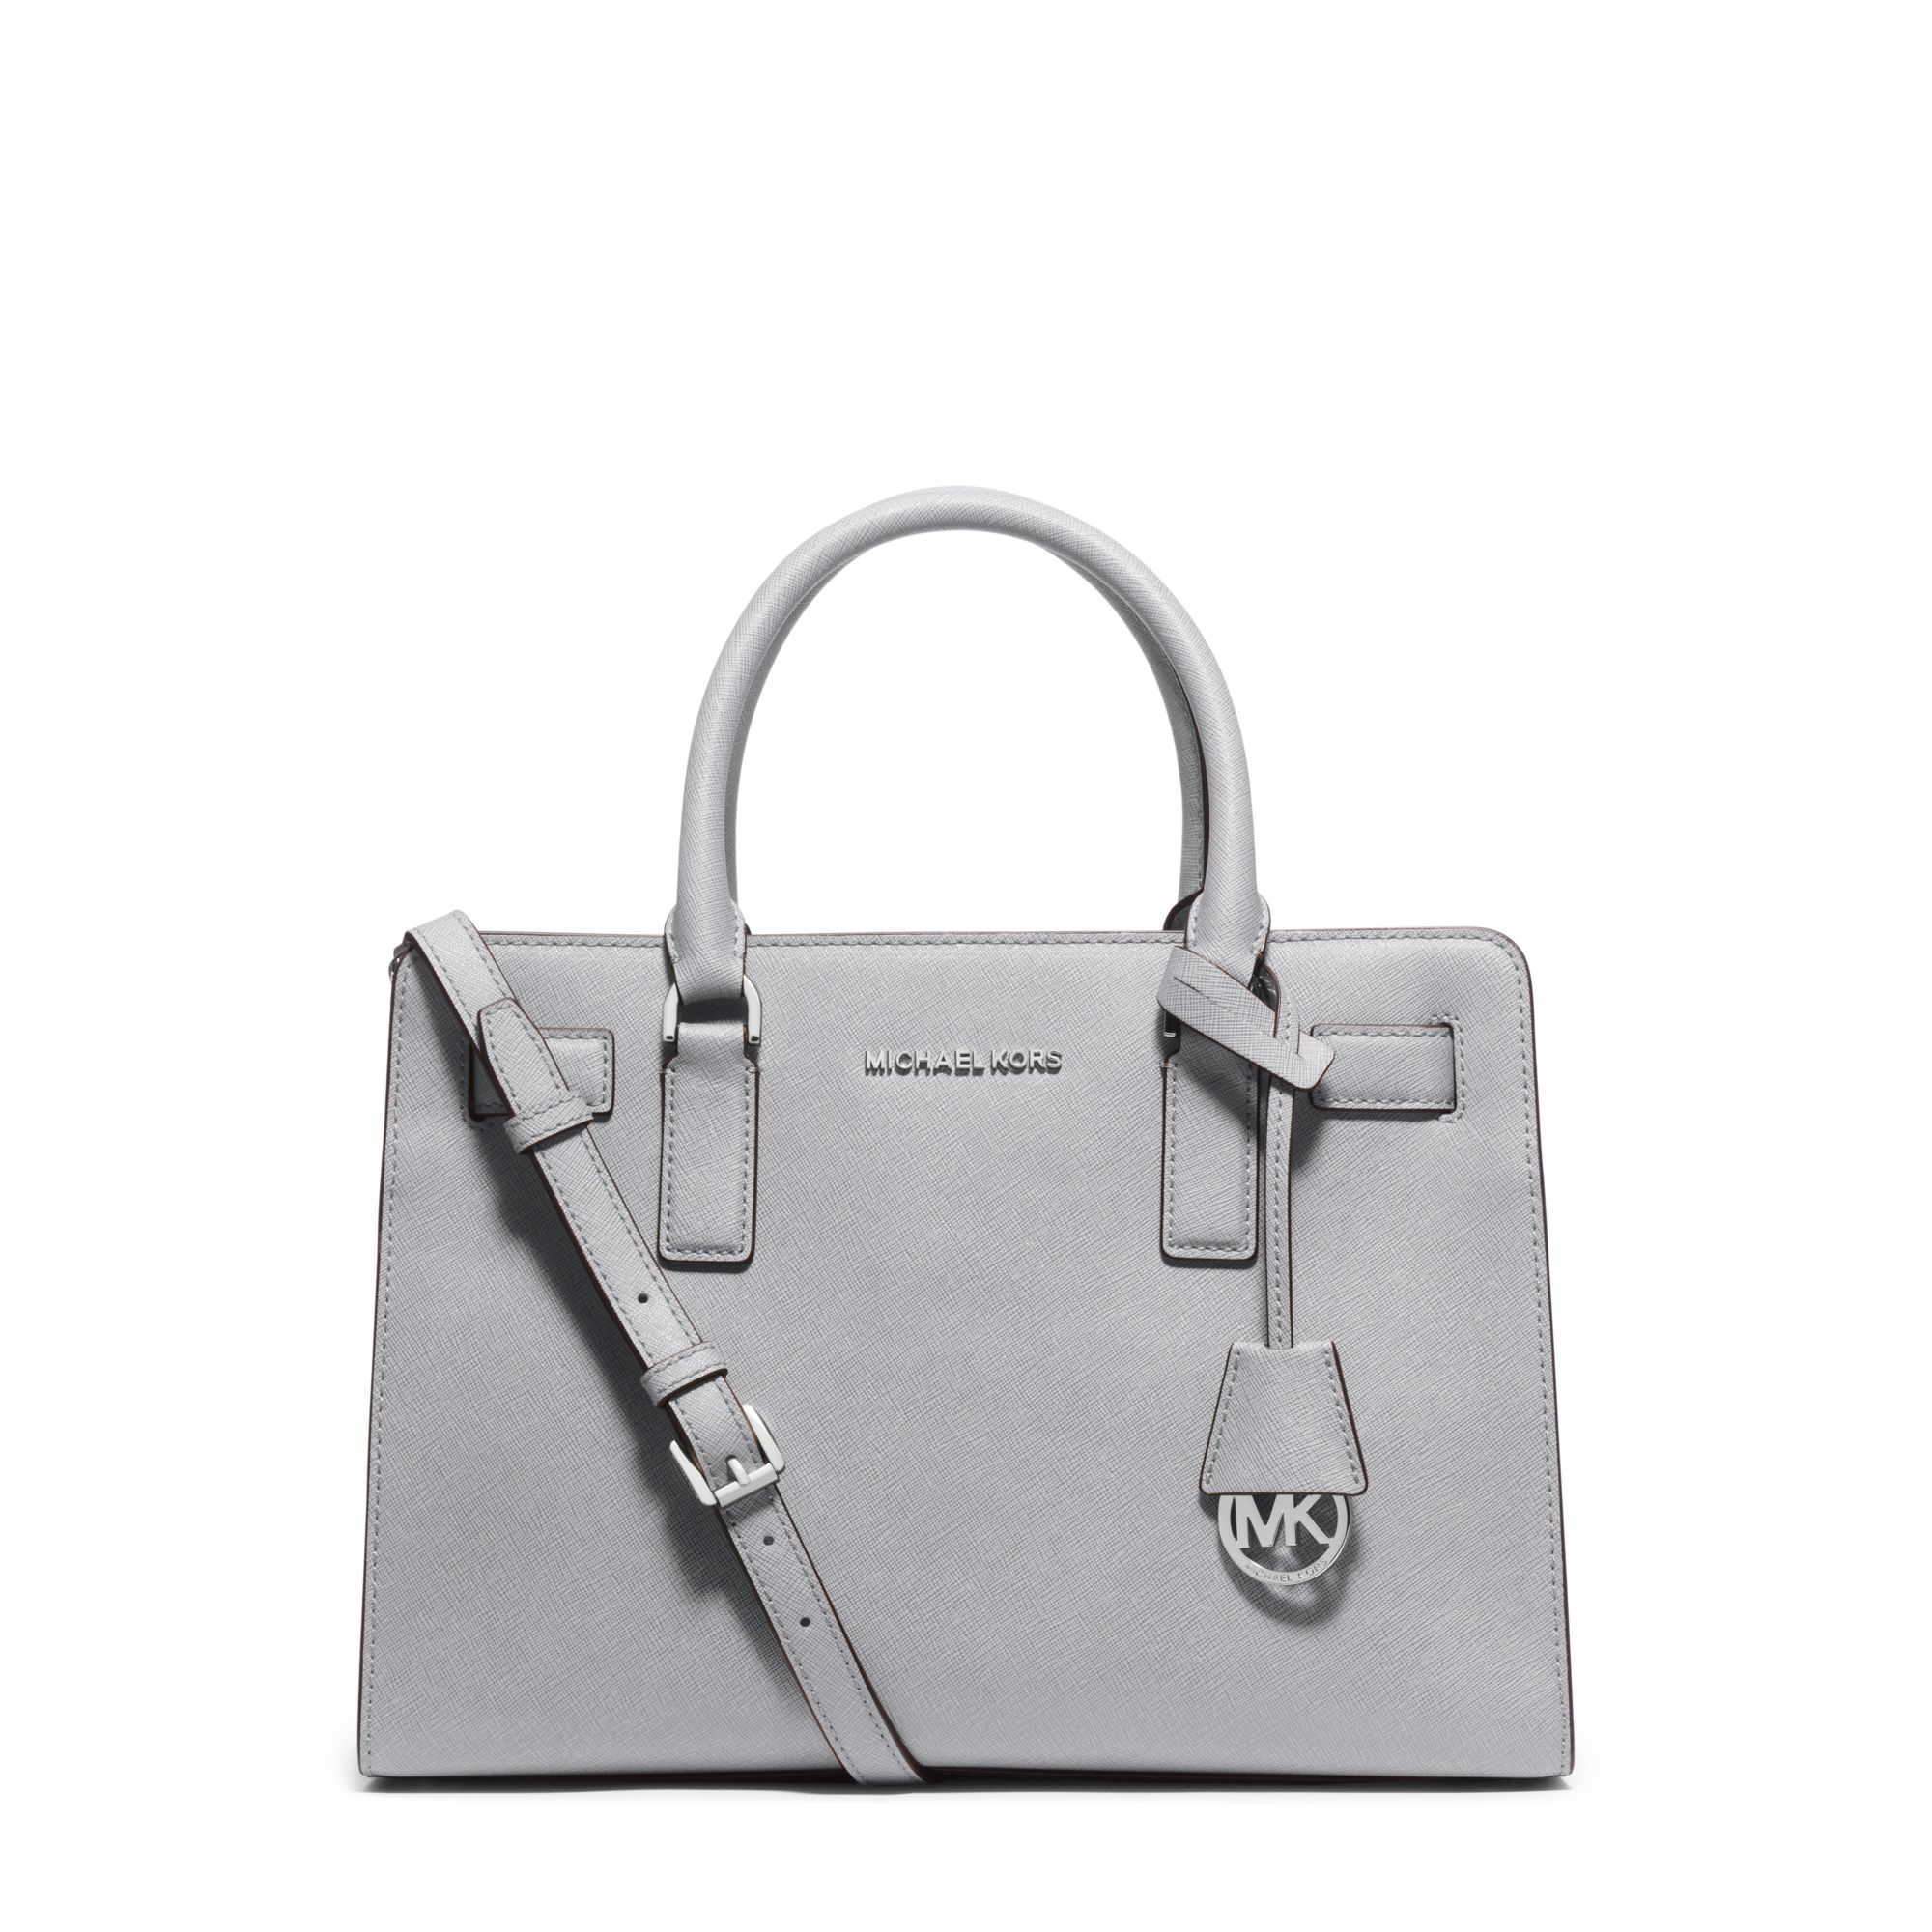 f653b901ee372 Lyst - Michael Kors Dillon Saffiano Leather Satchel in Gray